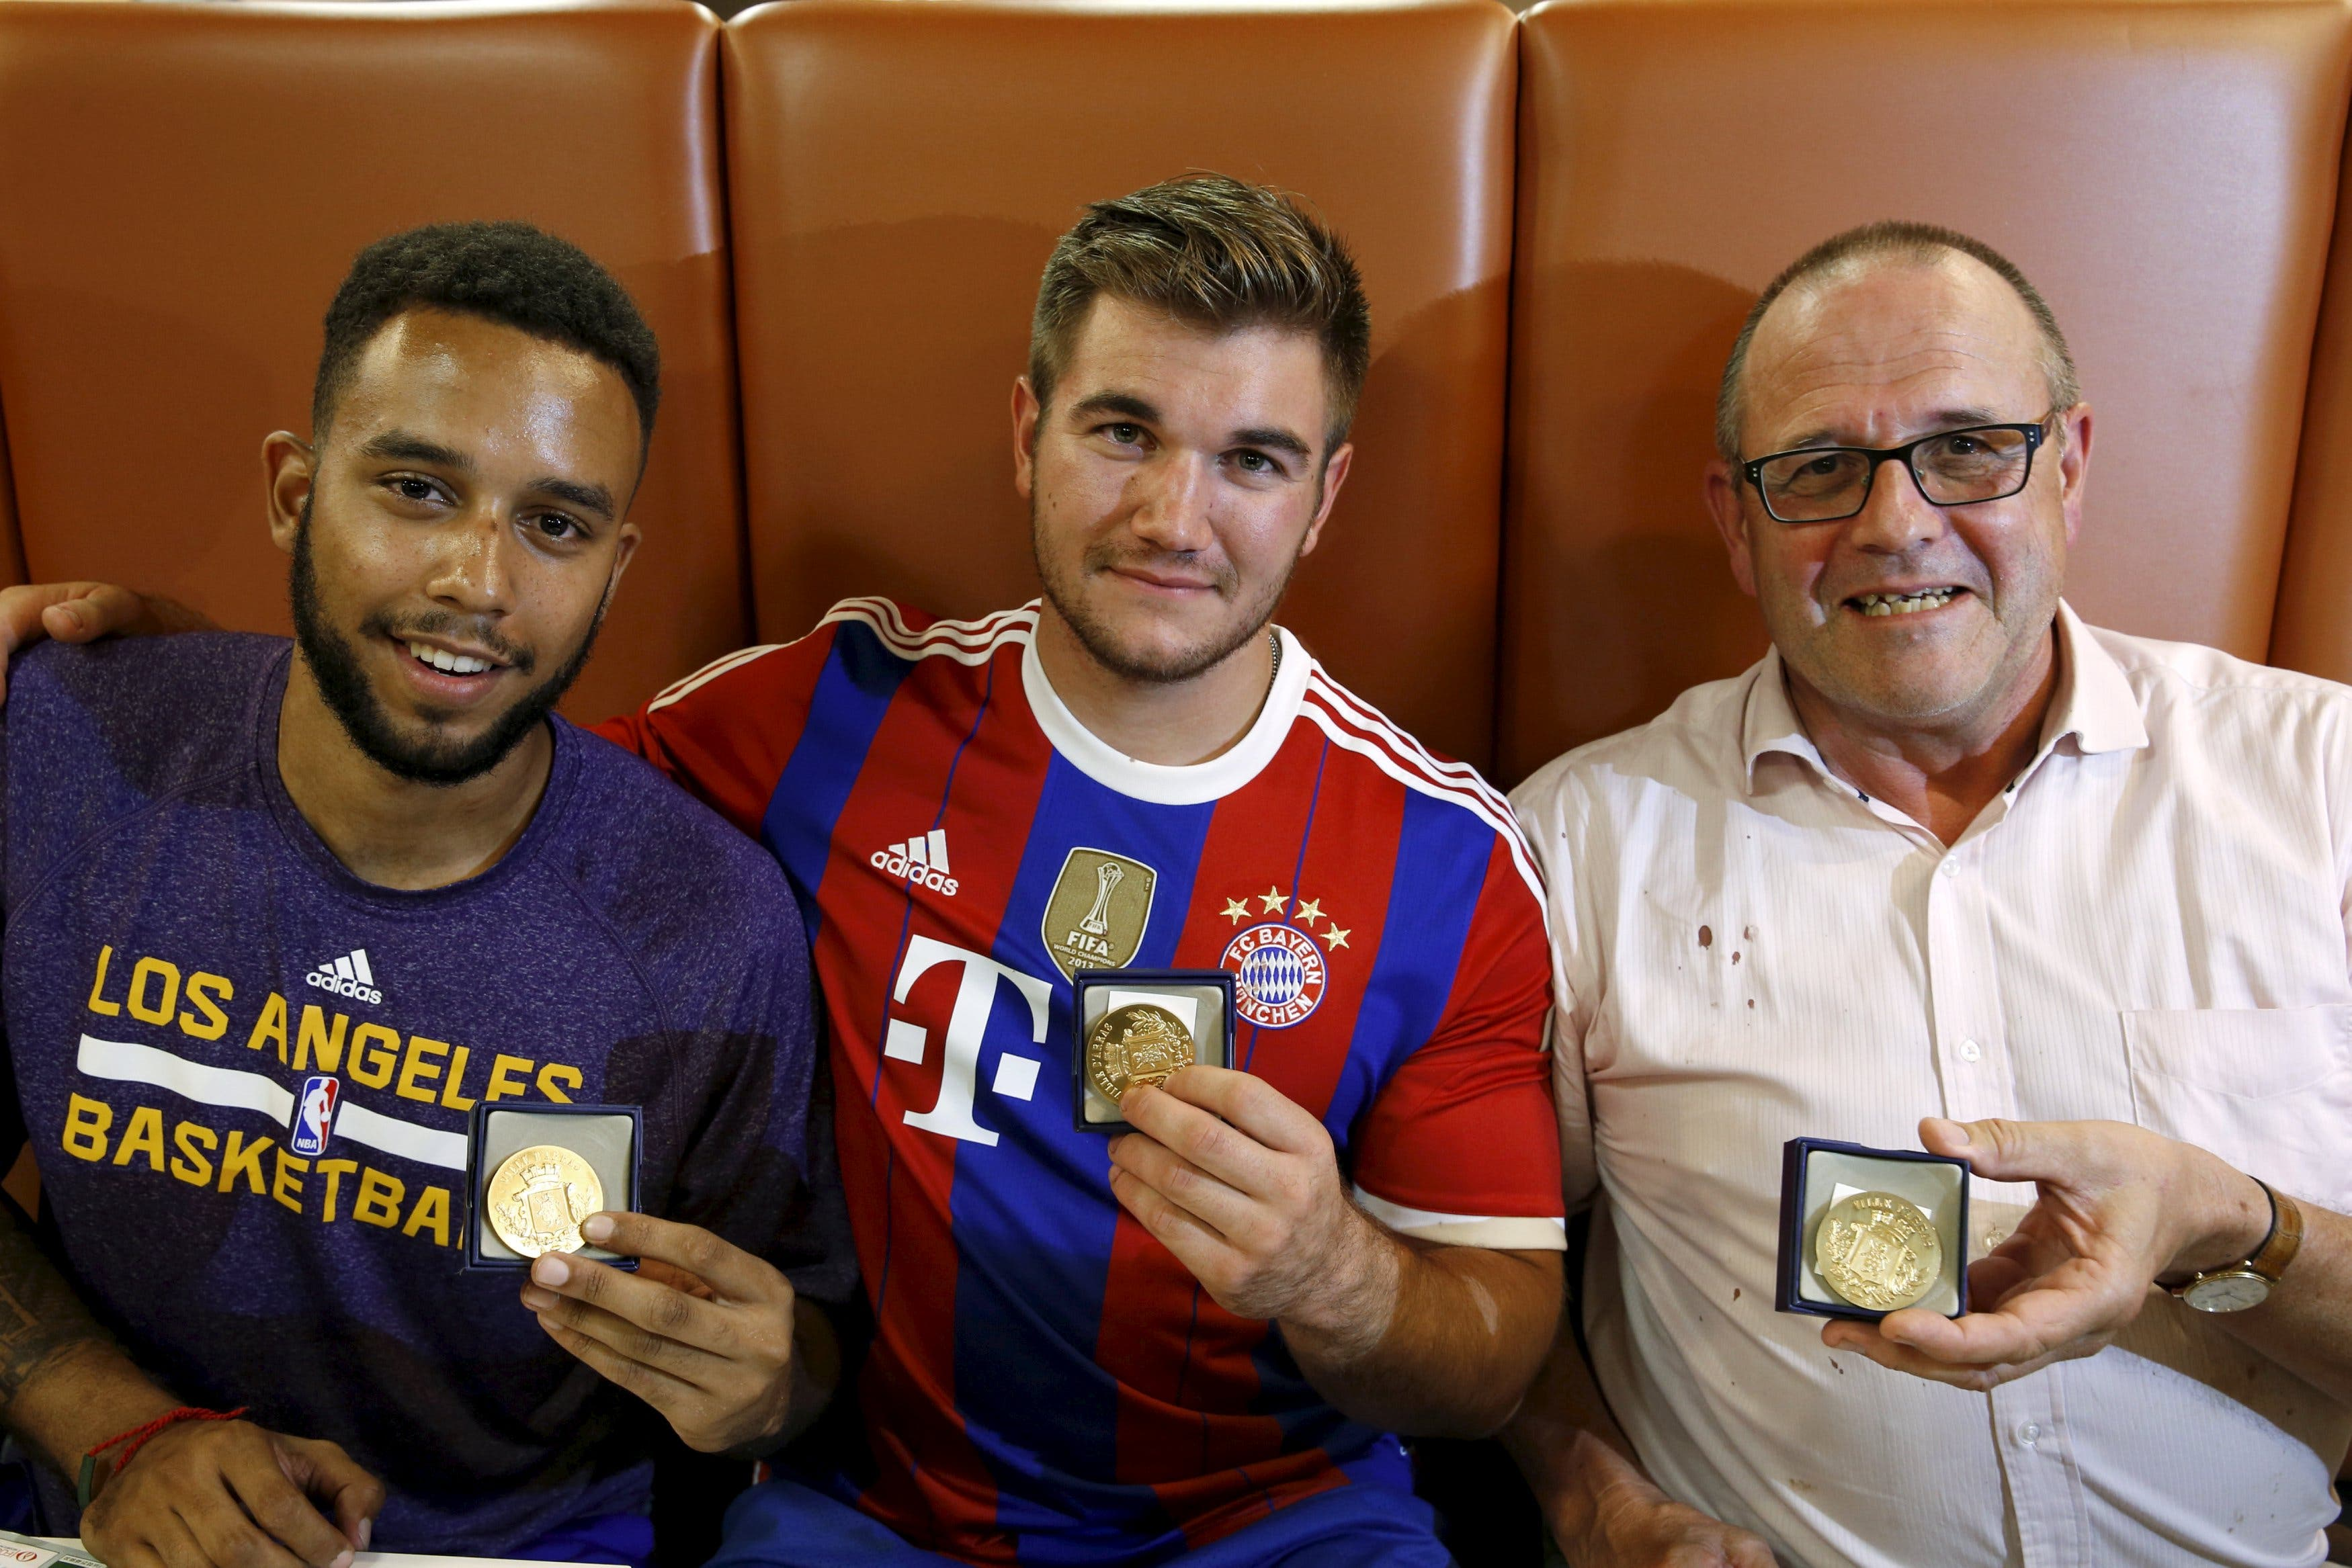 Sadler, Sharlatos, and Norman, three men who helped to disarm an attacker on a train from Amsterdam to France, pose with their medals at a restaurant in Arras, France. (File photo: Reuters)